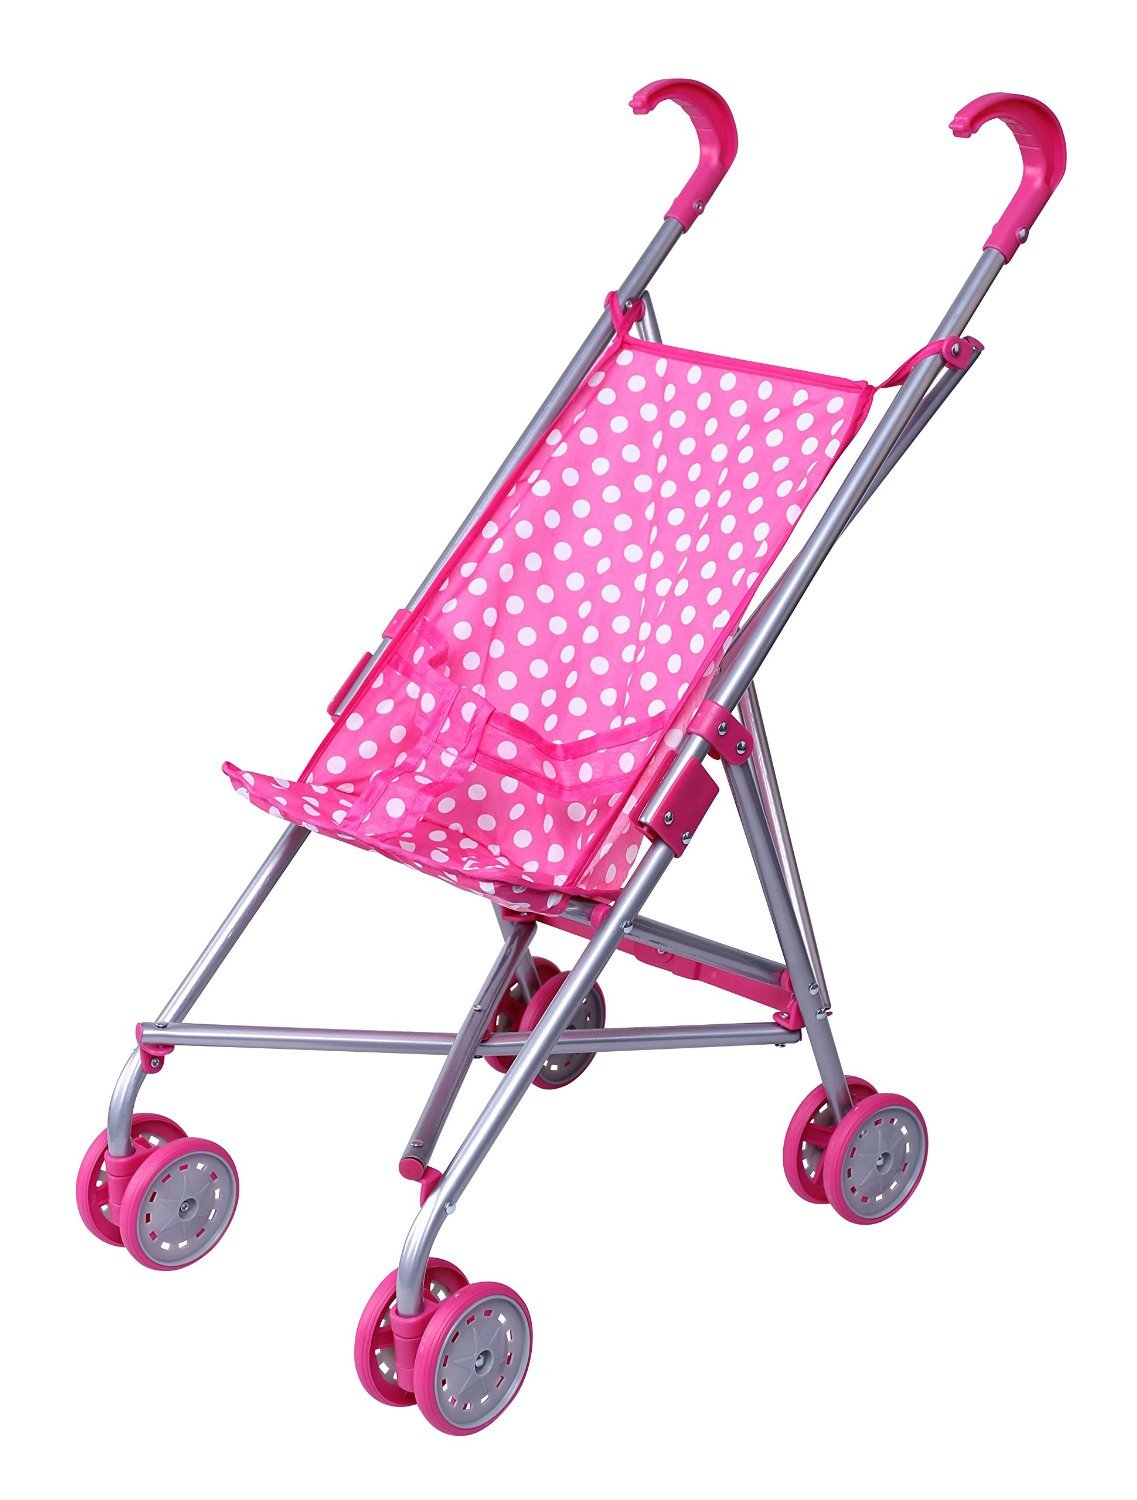 Precious toys Pink & White Polka Dots Foldable Doll Stroller with swivel wheels Homeco PT0127B